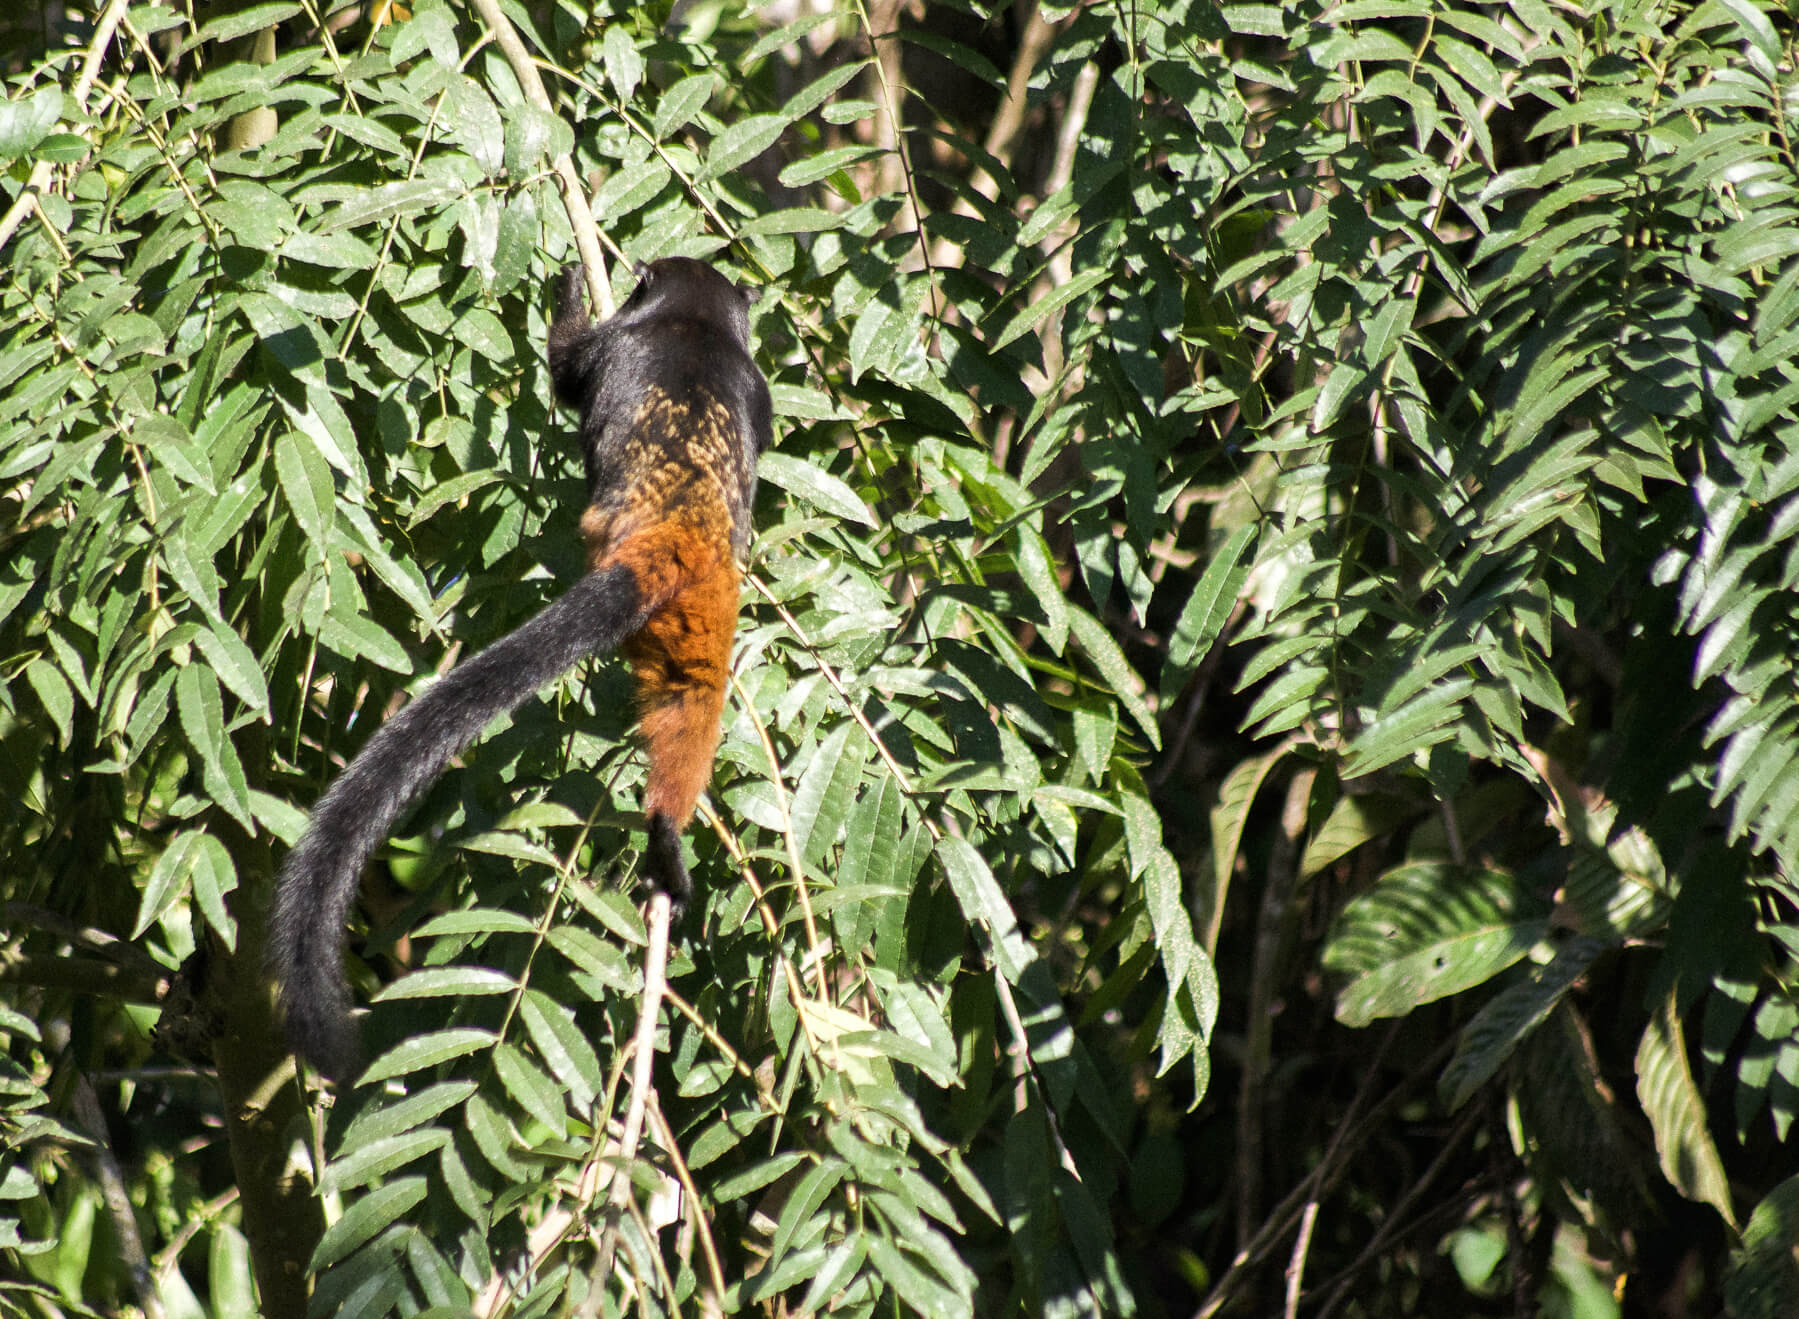 The back of a small black and brown Tamarin monkey climbing the side of a busy Amazon tree